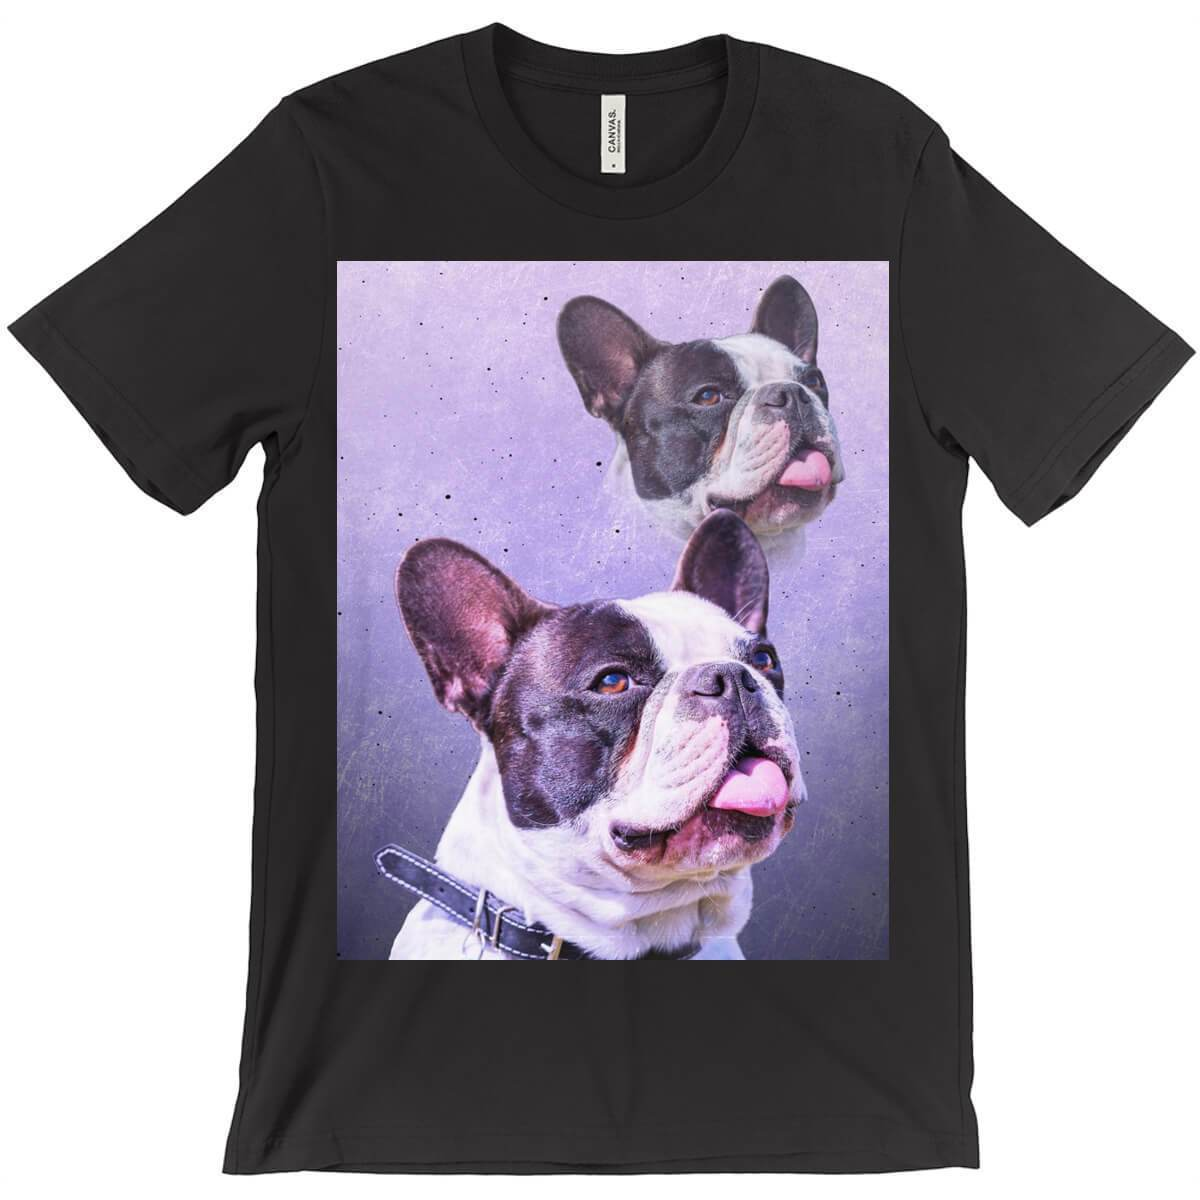 Super Portrait Mens Crew Neck T-shirt - Custom pet art of your dog or cat by pop-your-pup